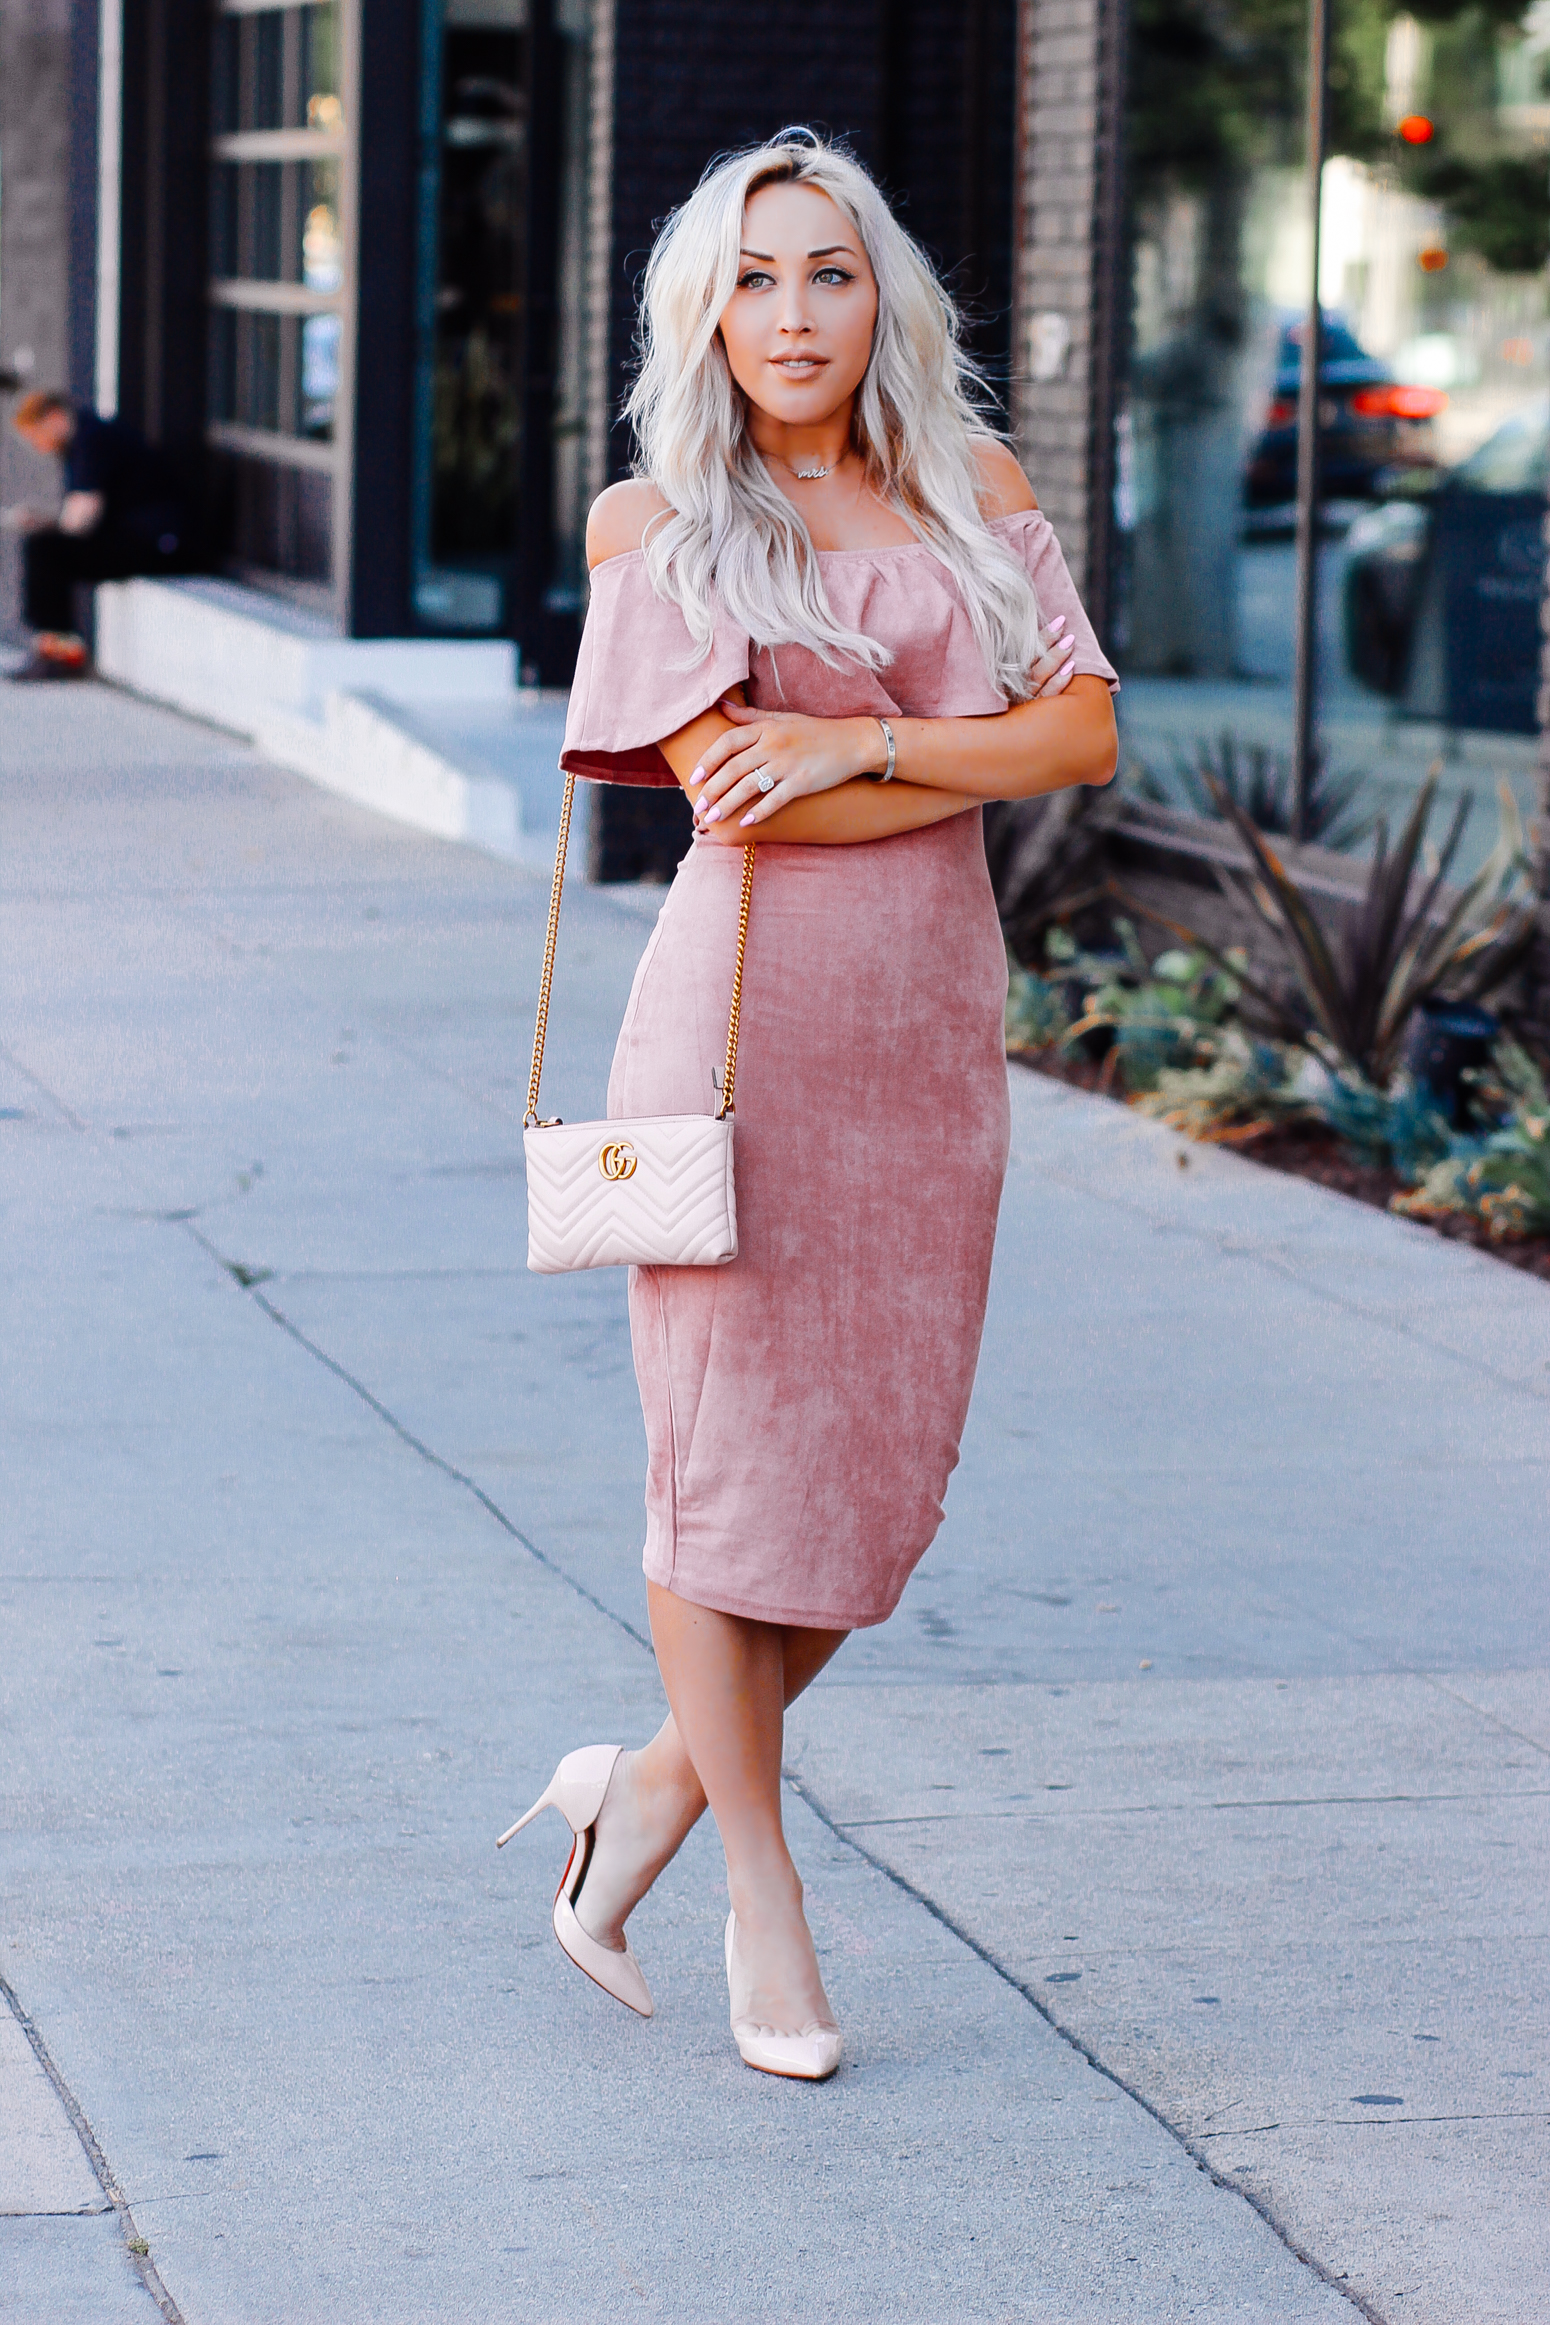 Blondie in the City | Pink Suede Off The Shoulder Dress | Pink Gucci | Pink Louboutin's